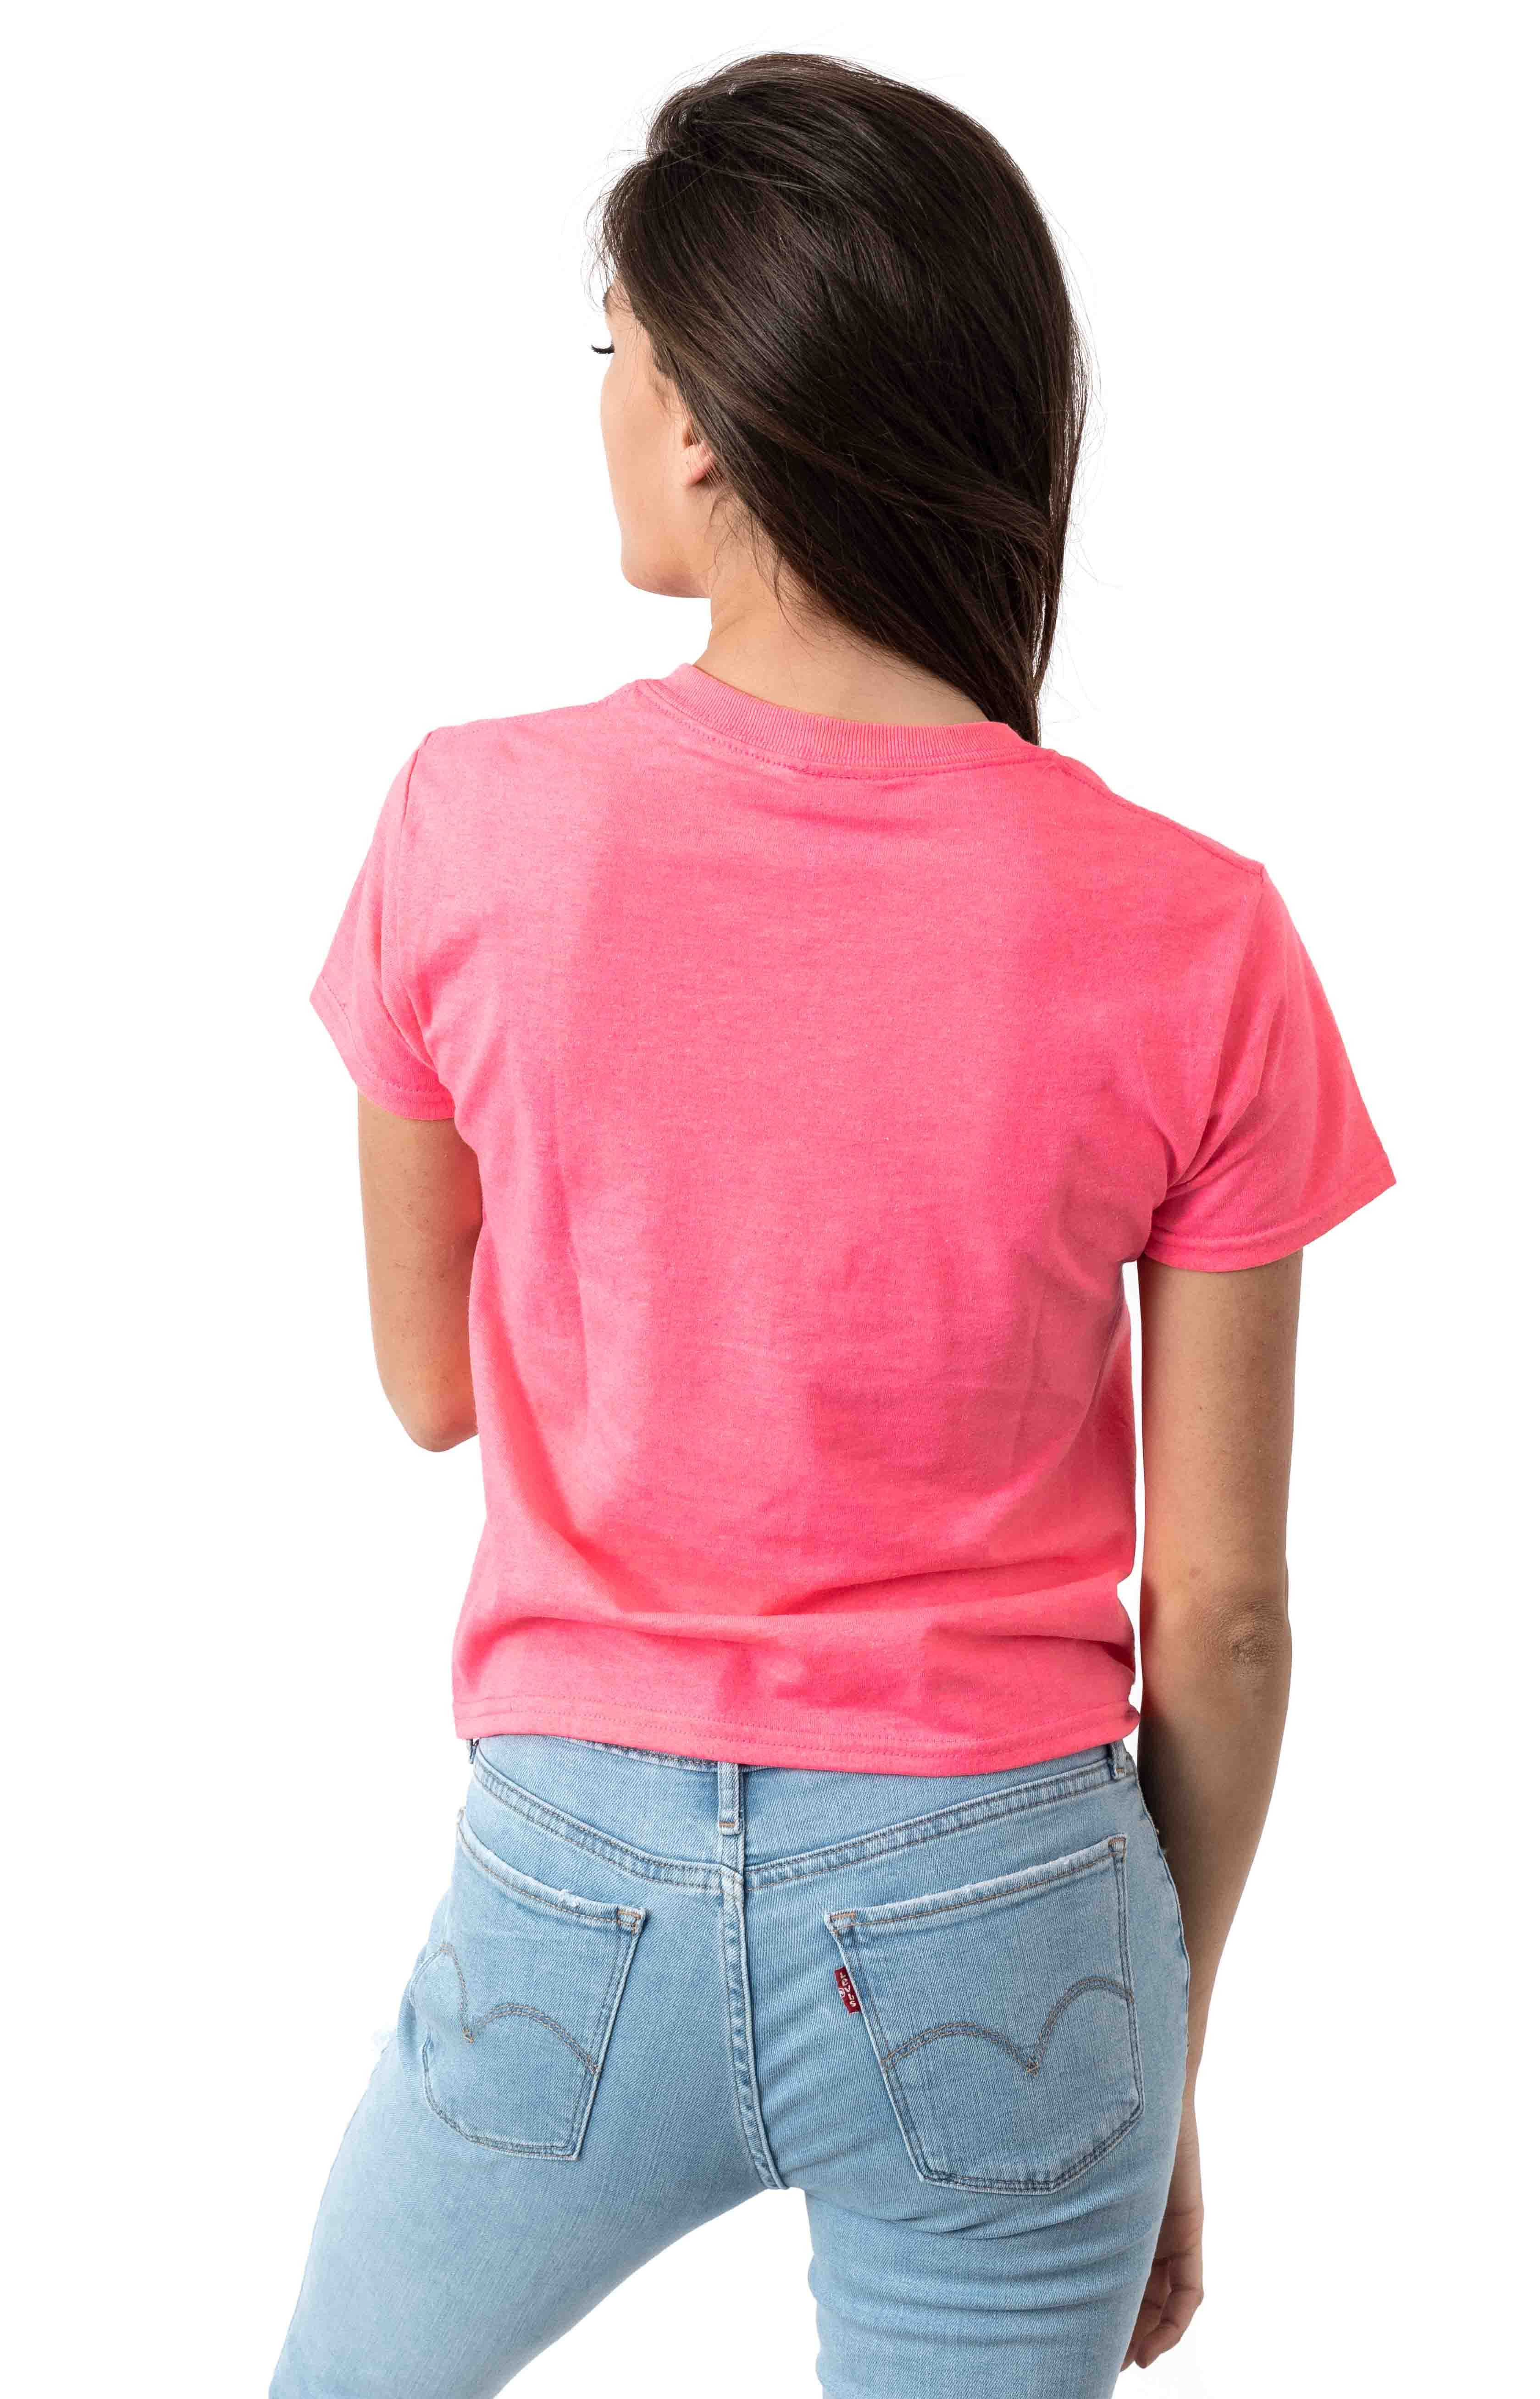 Eyes Icon T-Shirt - Safety Pink  3